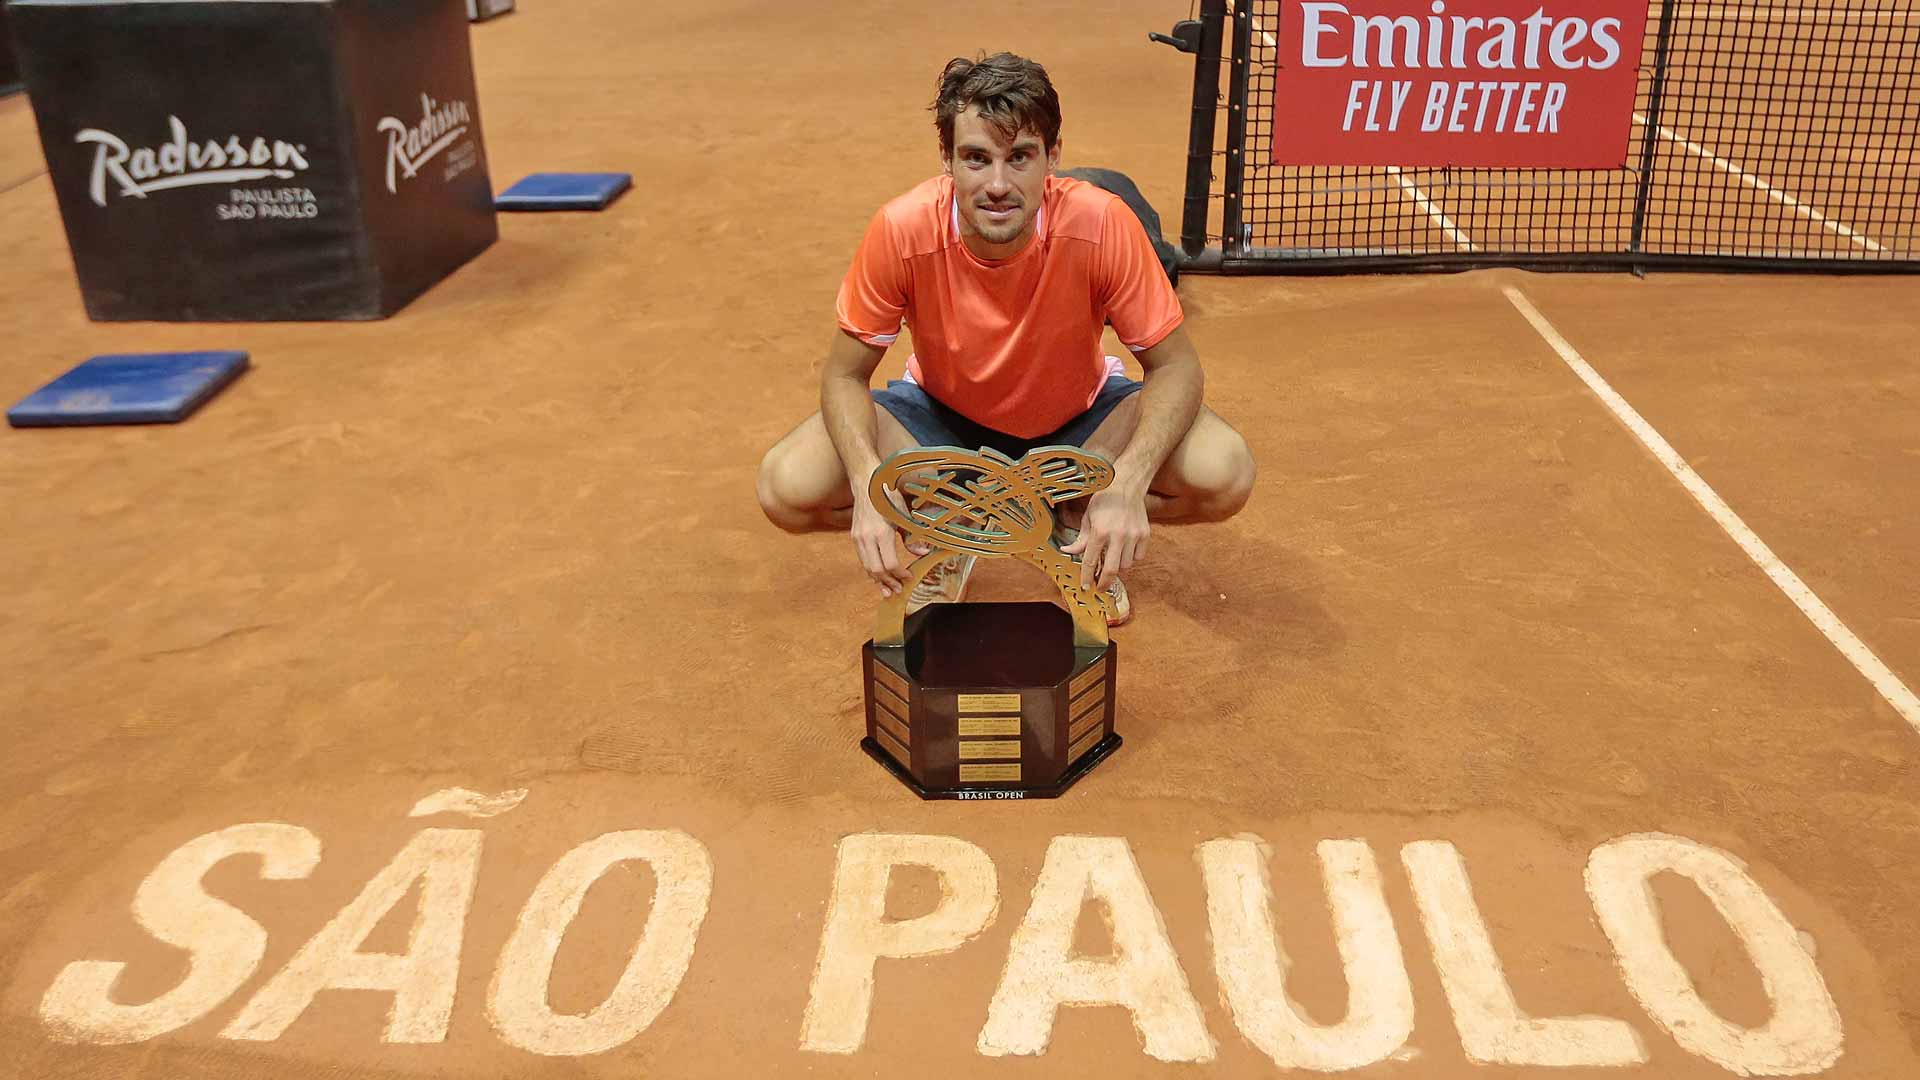 Guido Pella poses with his first ATP Tour trophy in Sao Paulo